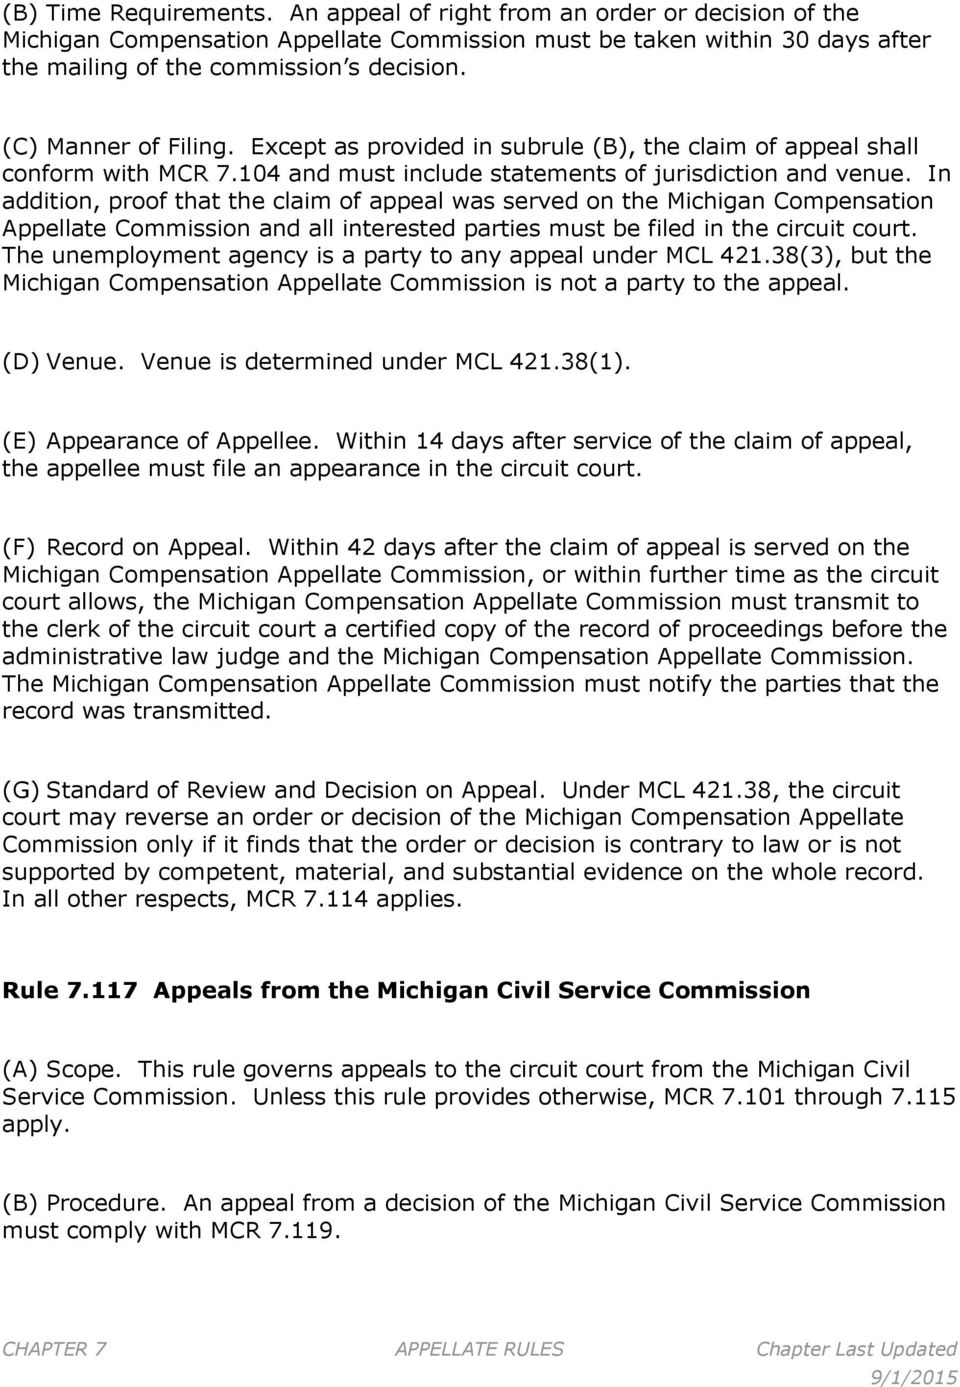 In addition, proof that the claim of appeal was served on the Michigan Compensation Appellate Commission and all interested parties must be filed in the circuit court.